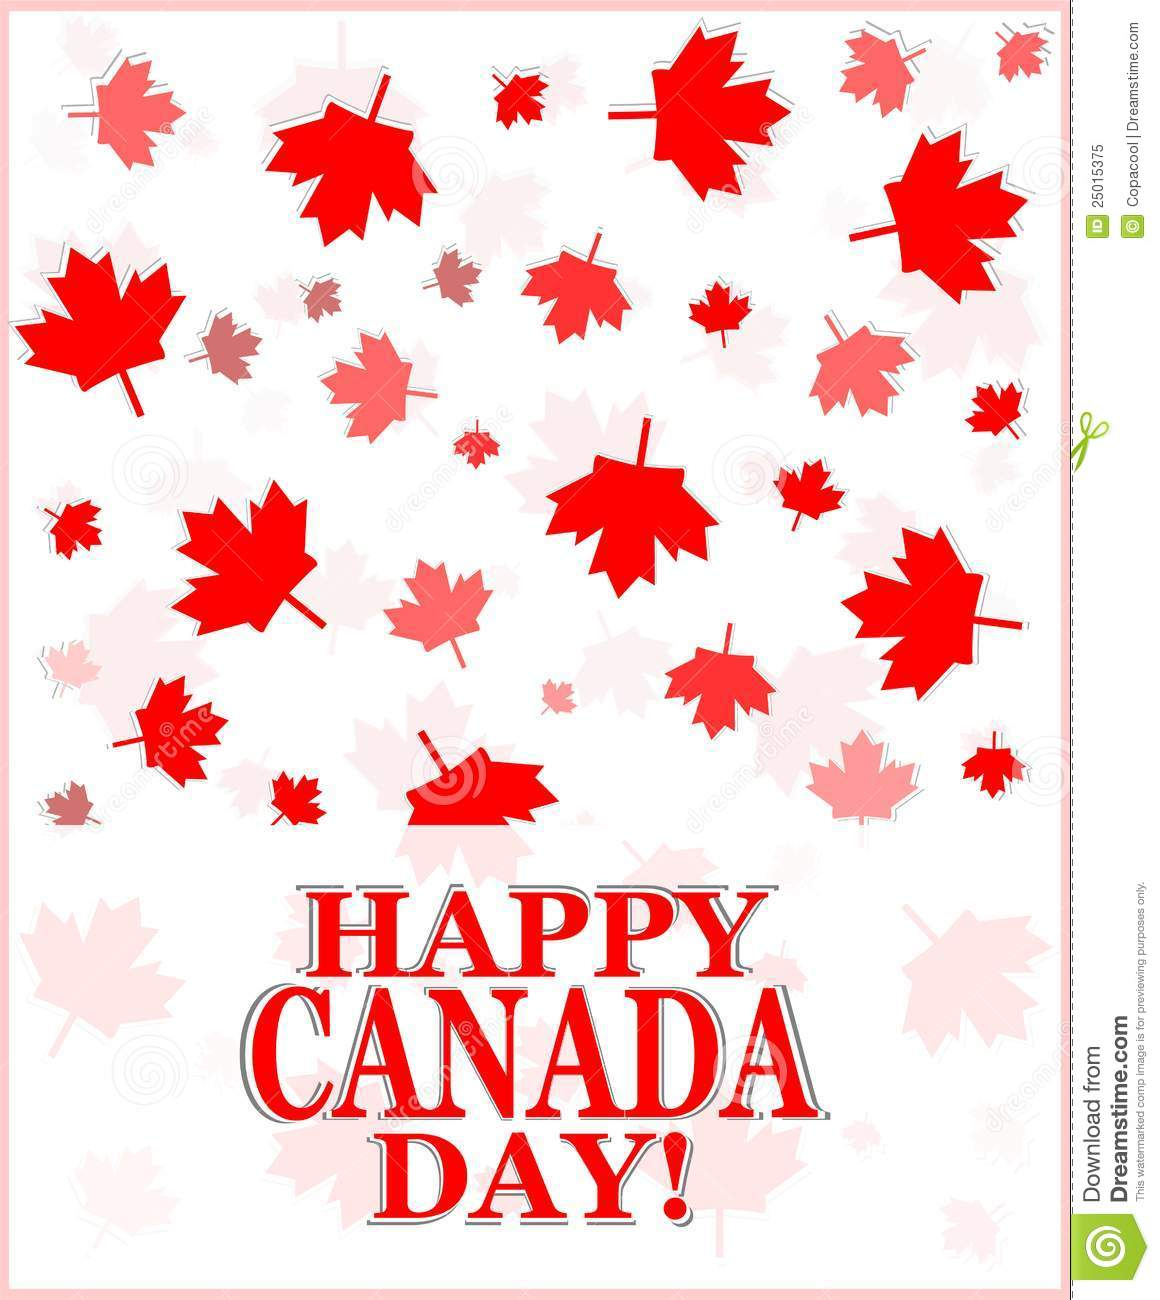 Happy canada day greetings card stock vector illustration of first happy canada day greetings card m4hsunfo